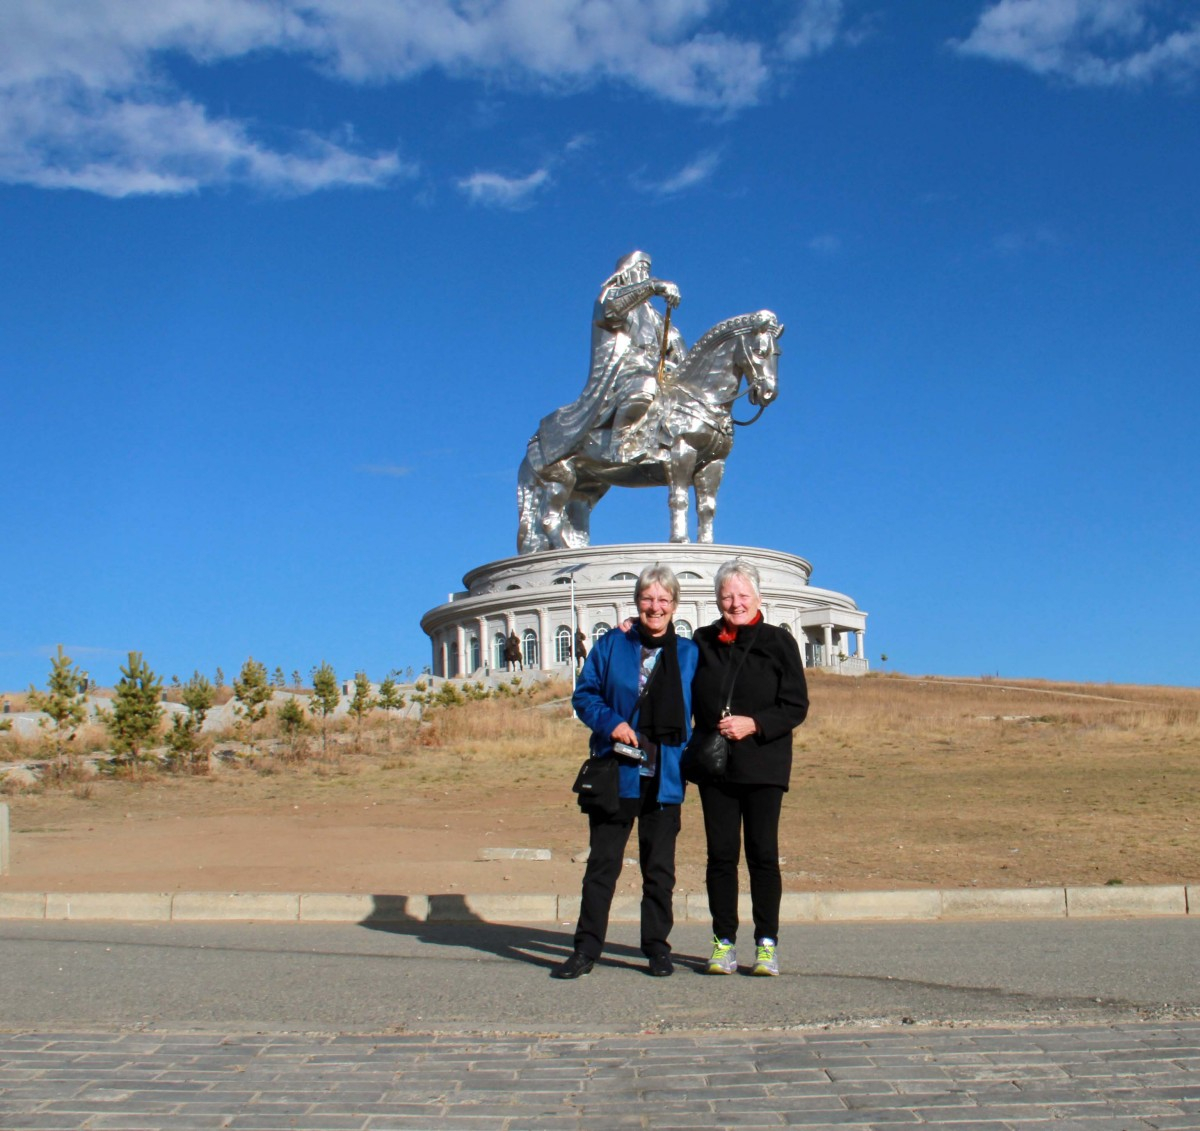 In front of the massive statue of Gengis Kahn